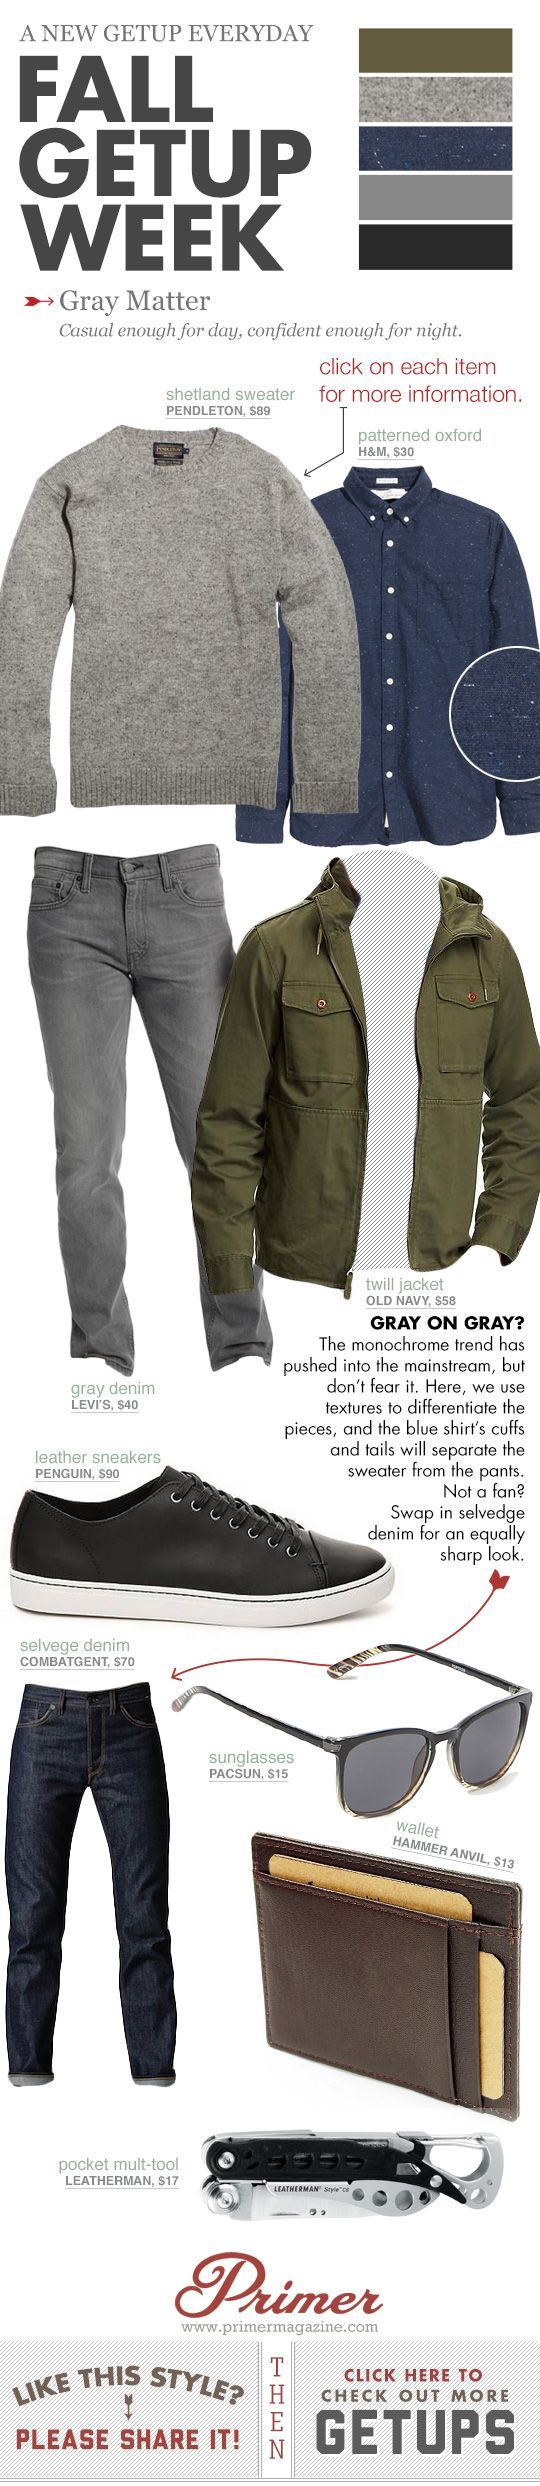 Blue flecked oxford button shirt, grey jeans, grey crew-neck sweater, olive green jacket, and black sneakers.